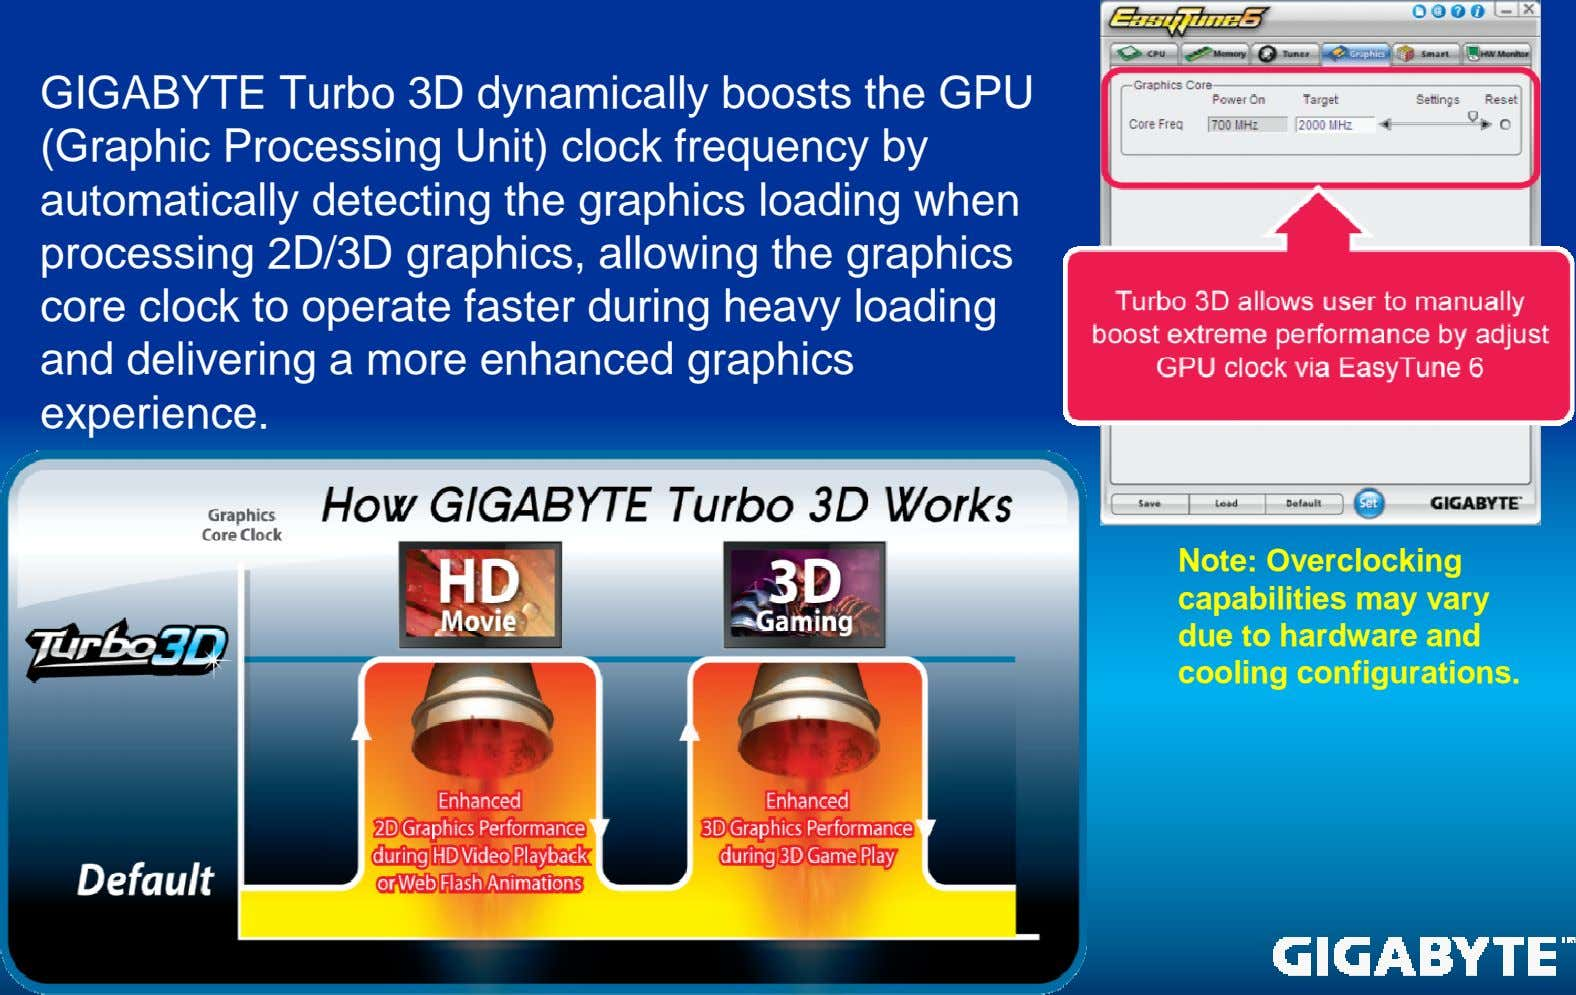 GIGABYTE Turbo 3D dynamically boosts the GPU (Graphic Processing Unit) clock frequency by automatically detecting